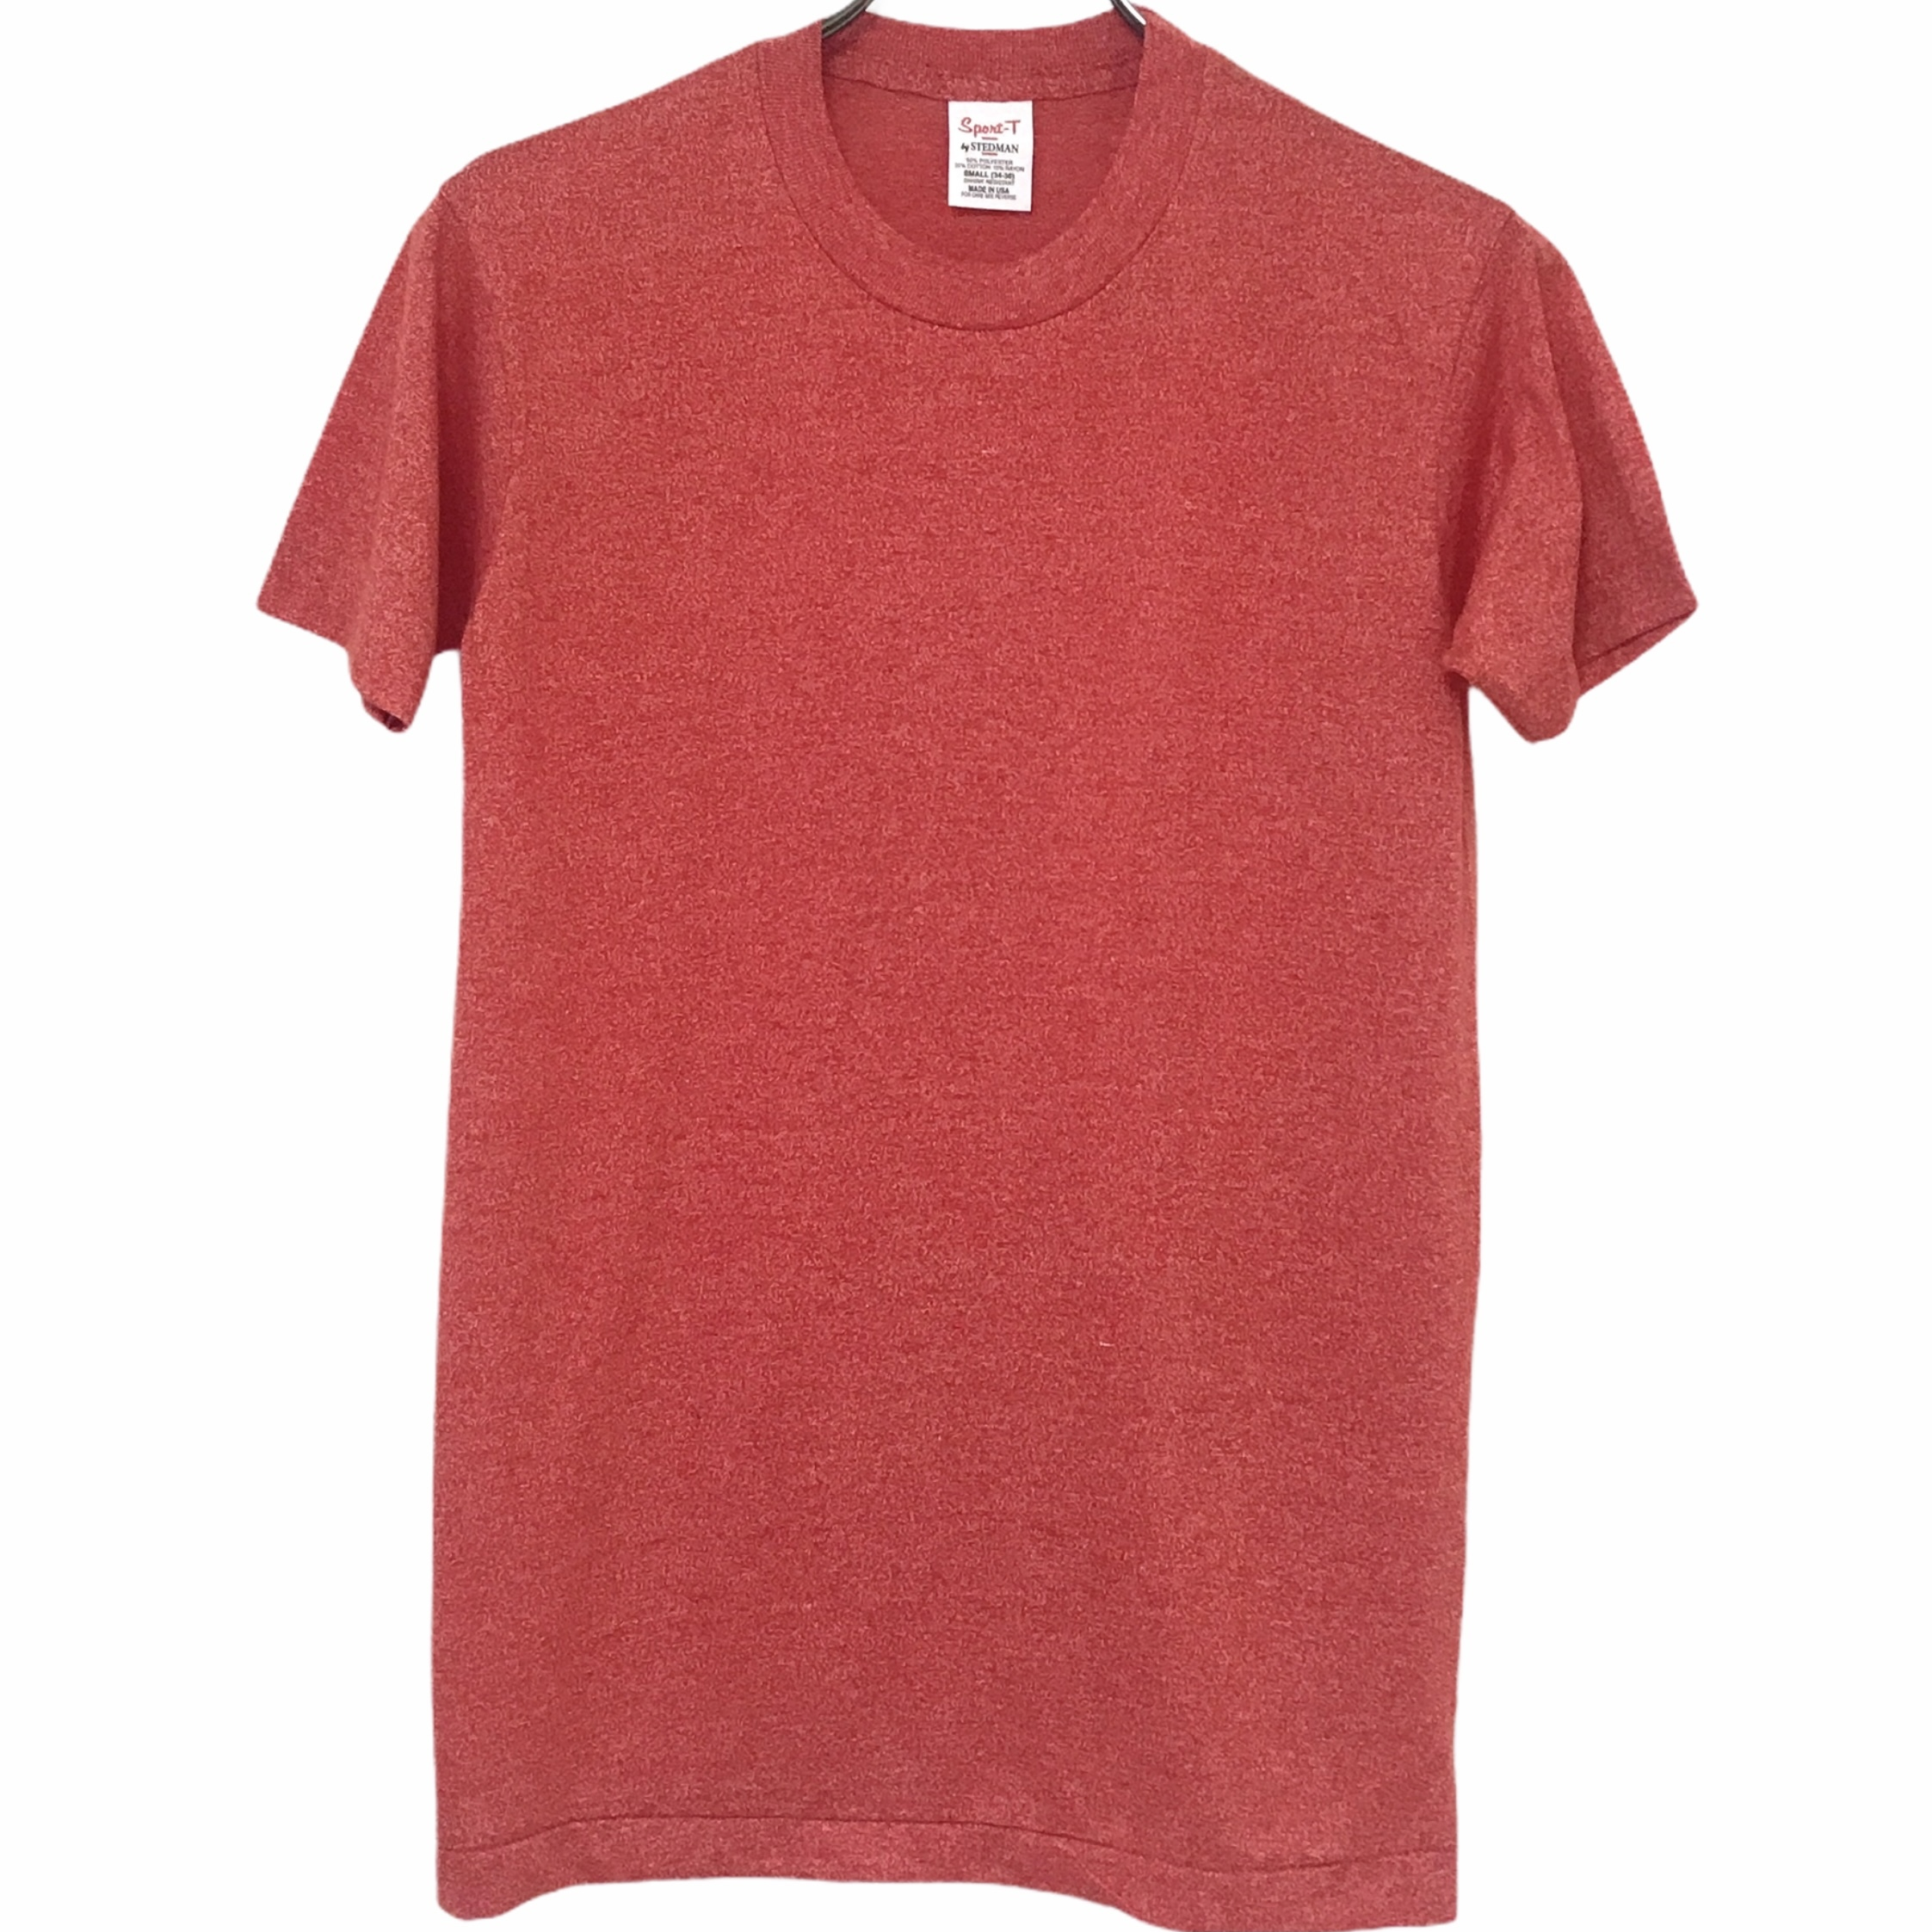 Dead Stock!70's Sport-T by STEDMAN T-shirt made in USA Red